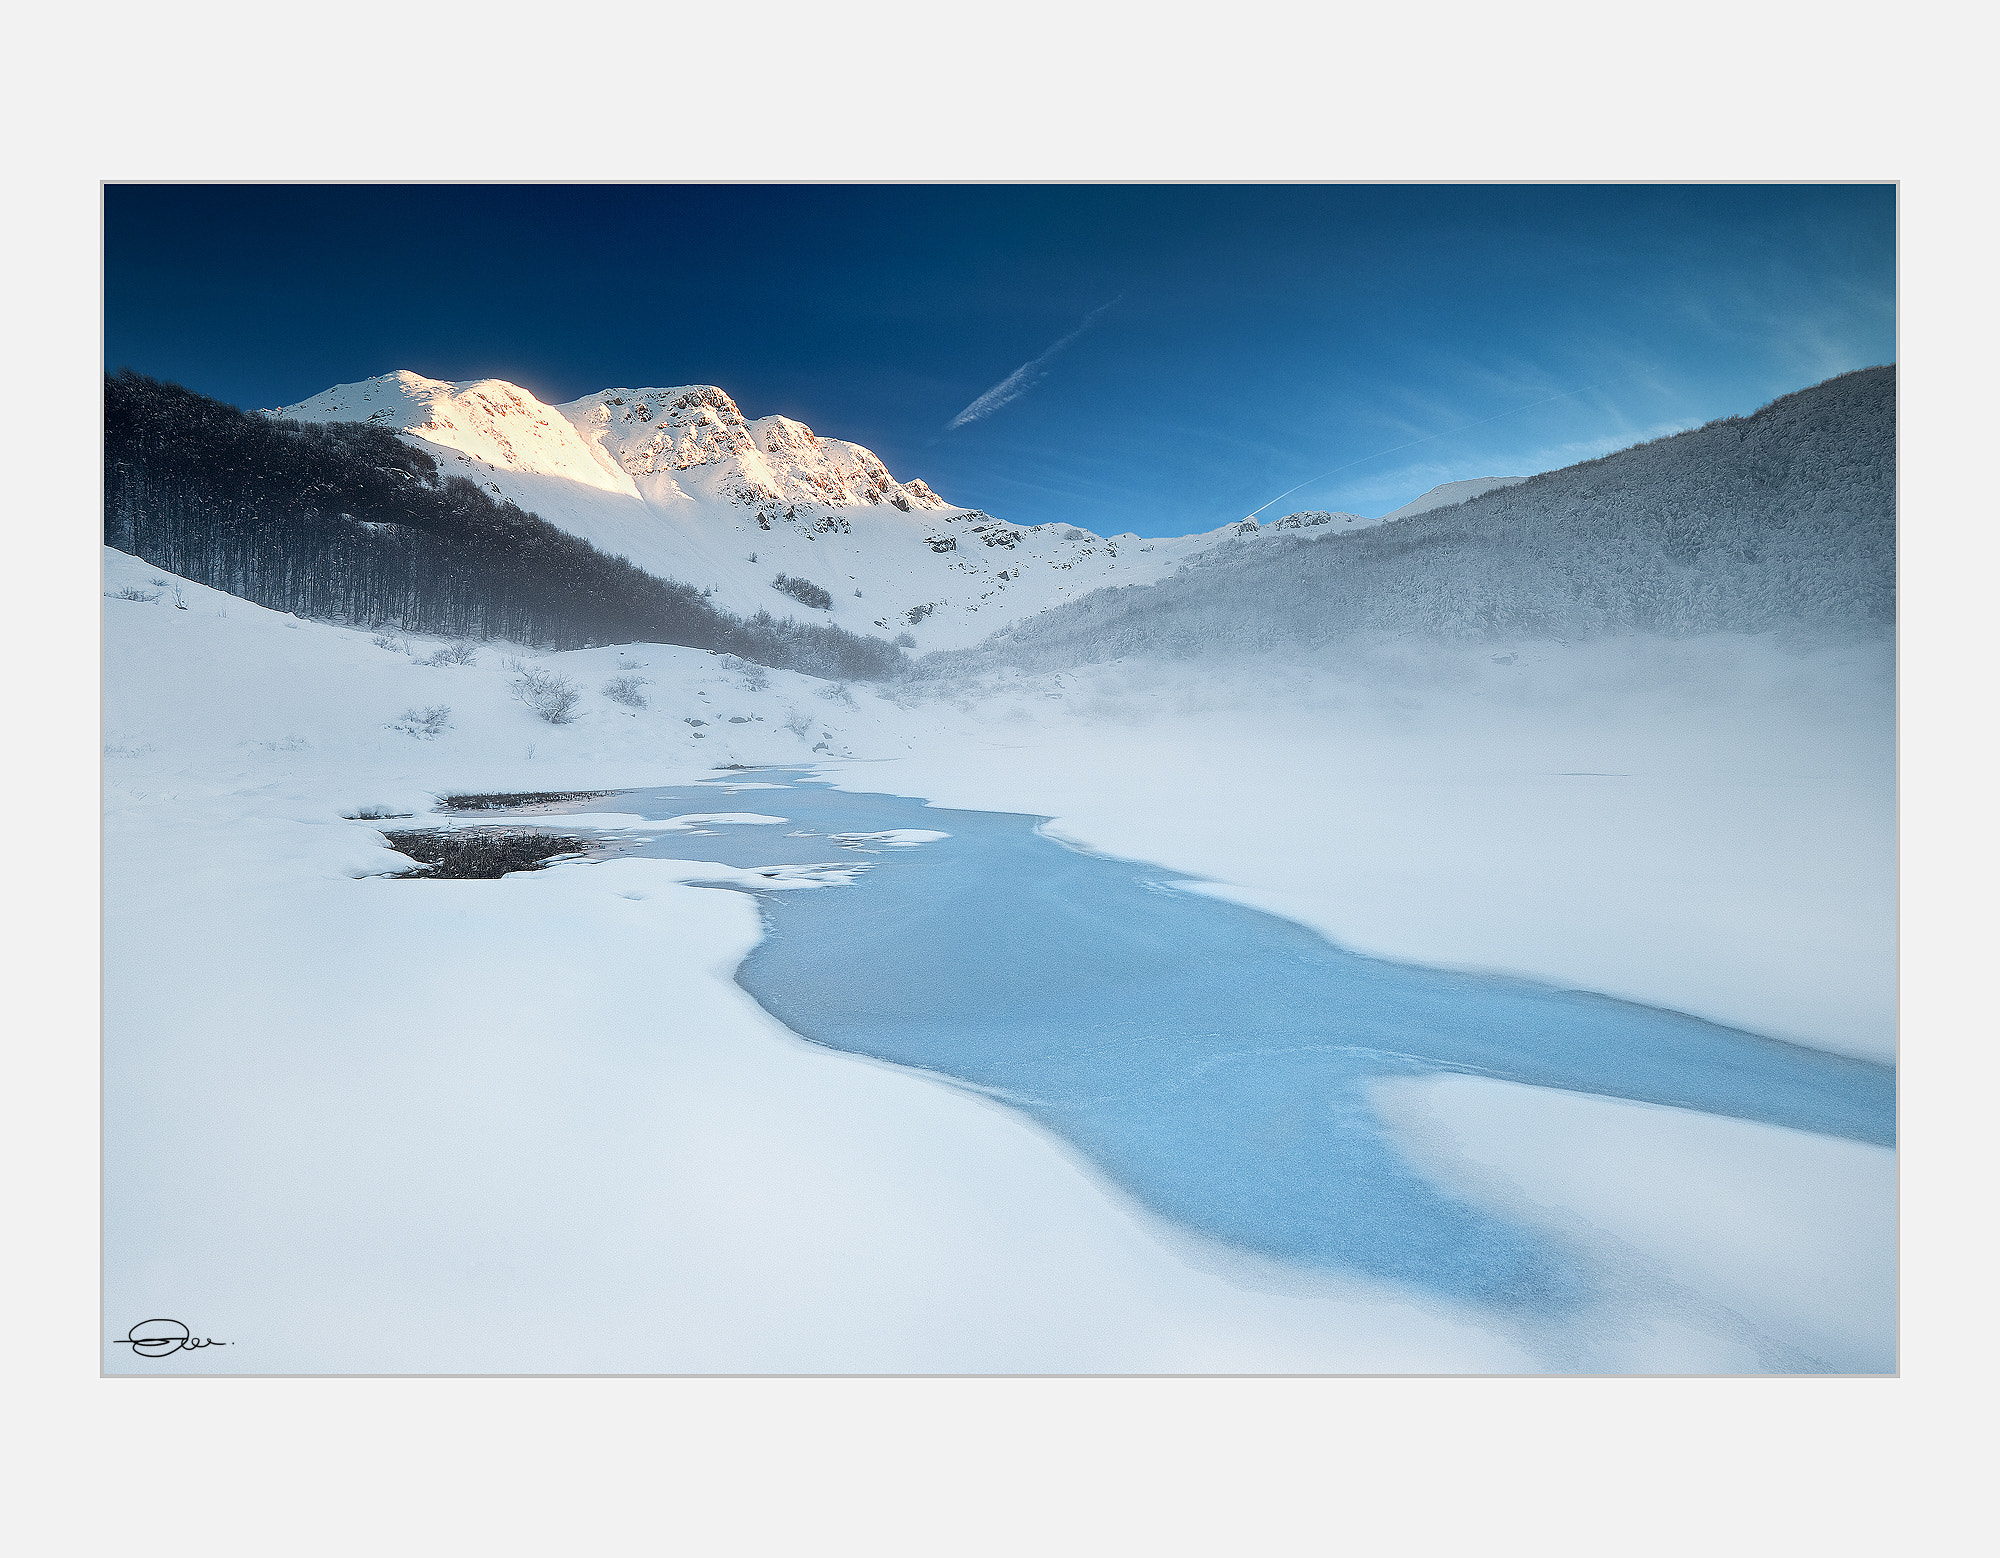 Photograph Iced lake by Enrico Montanari on 500px